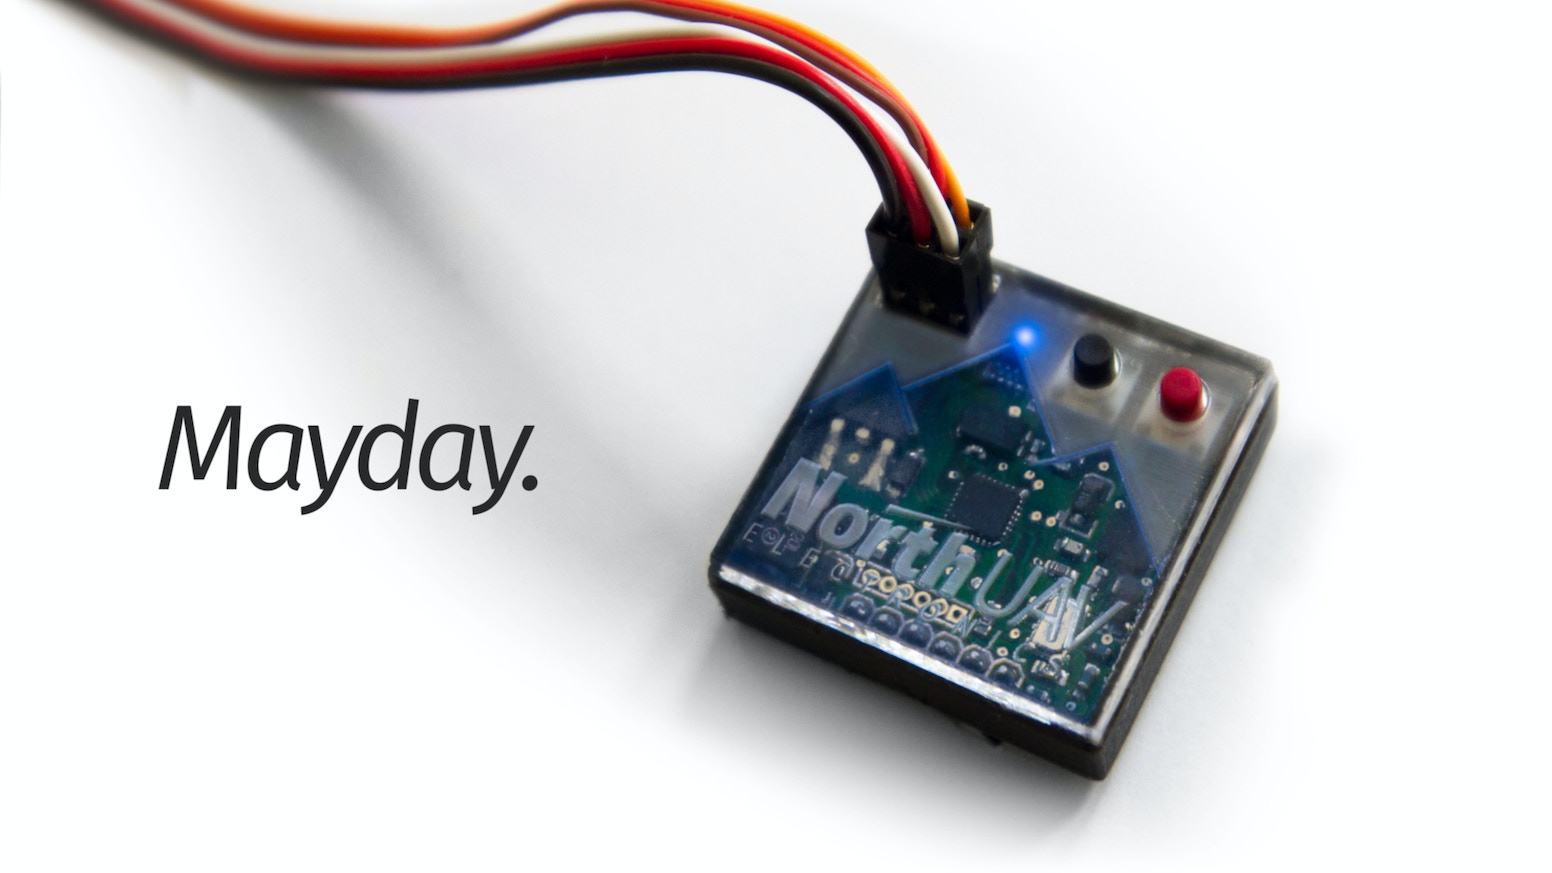 Mayday is a standalone device that detects when your quadcopter is crashing and can deploy a parachute.